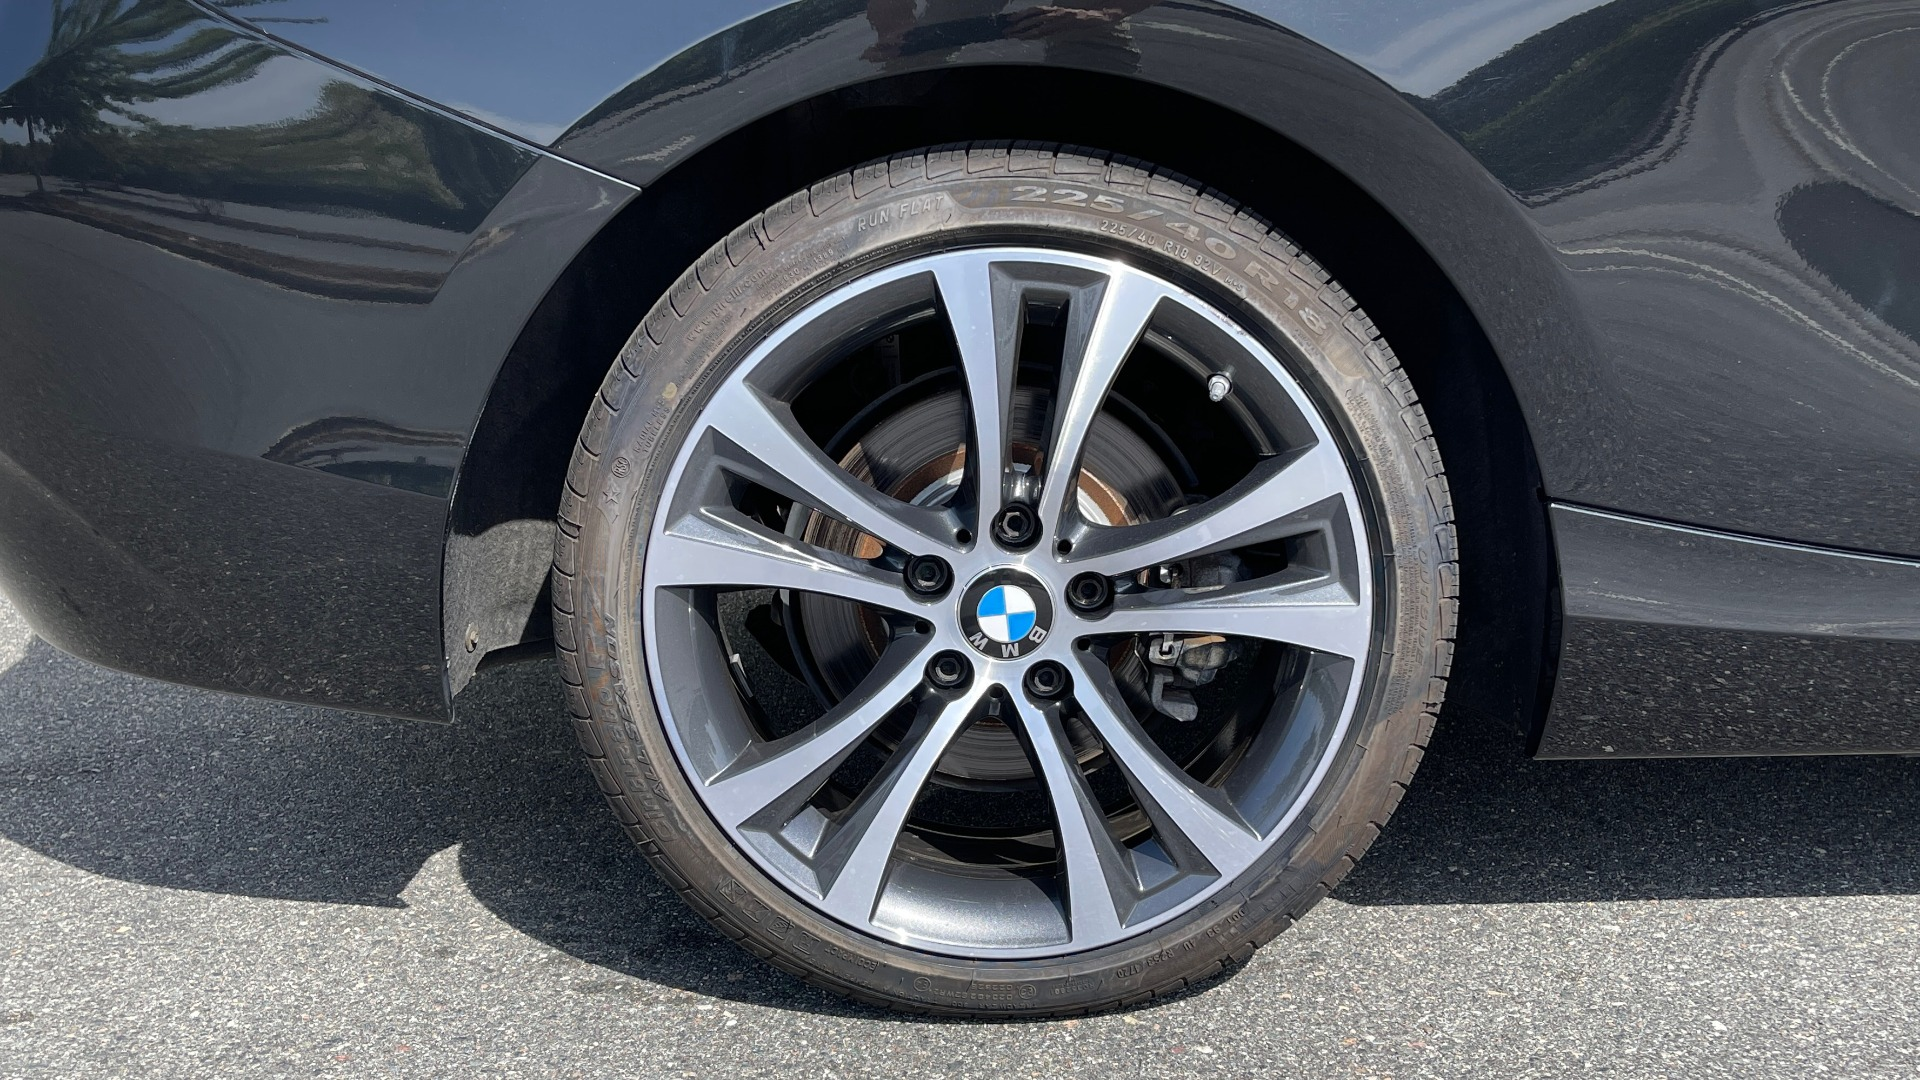 Used 2018 BMW 2 SERIES 230I XDRIVE PREMIUM / CONV PKG / NAV / SUNROOF / REARVIEW for sale $30,795 at Formula Imports in Charlotte NC 28227 54